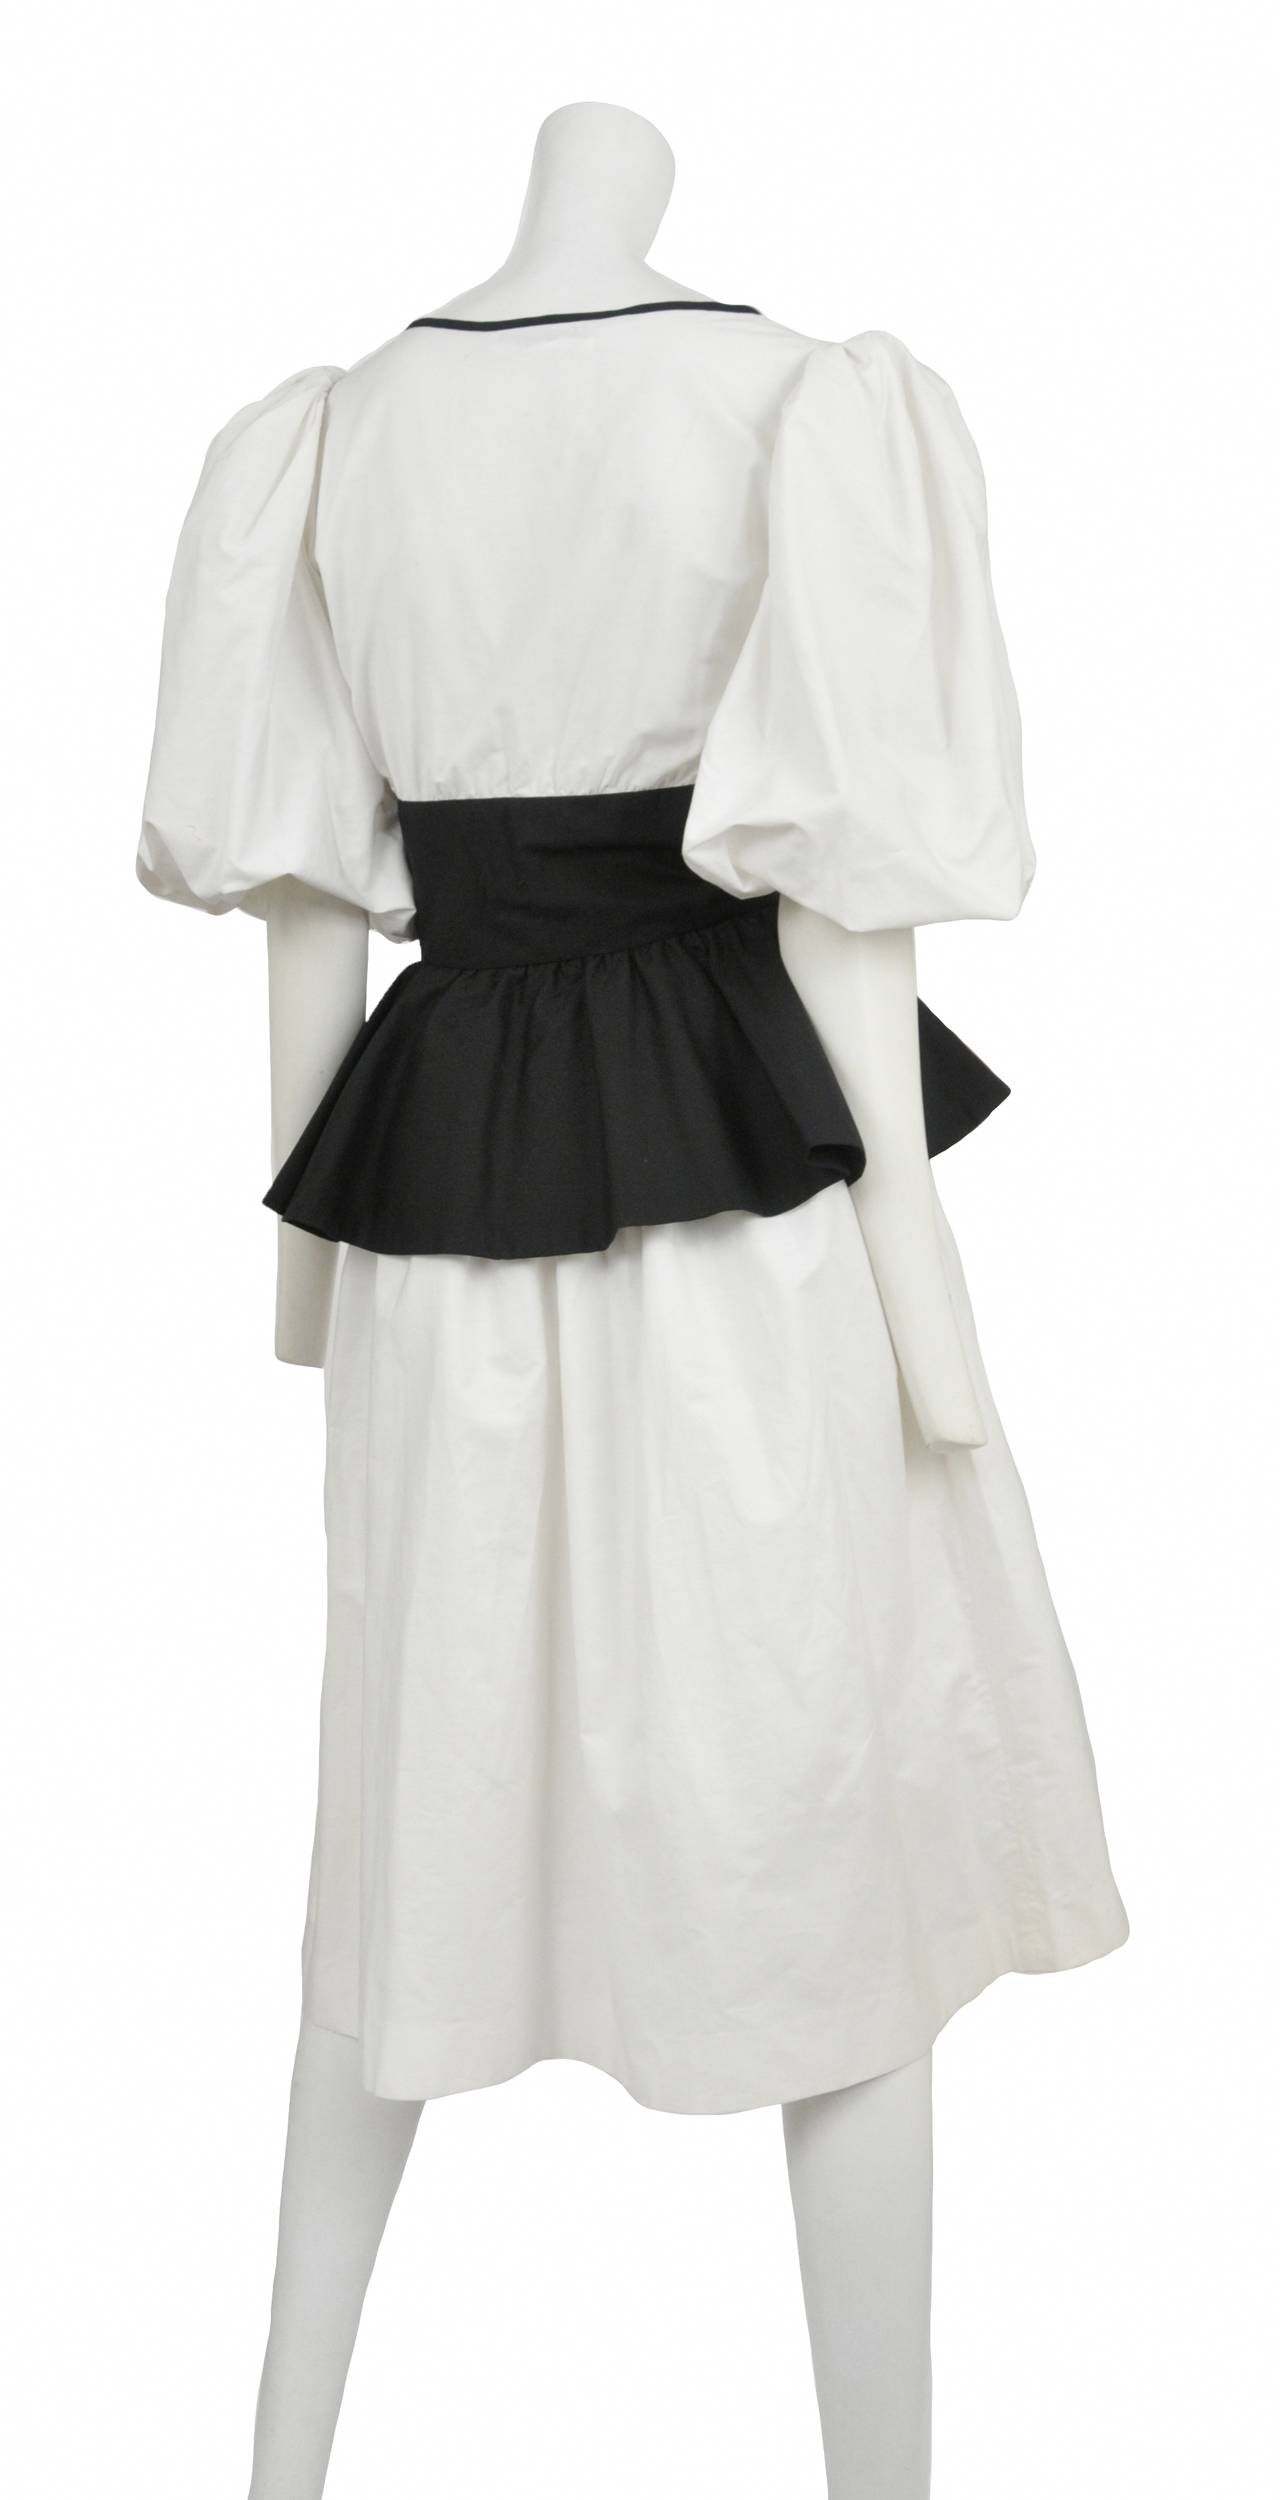 Yves Saint Laurent Black & White Peasant Dress 2